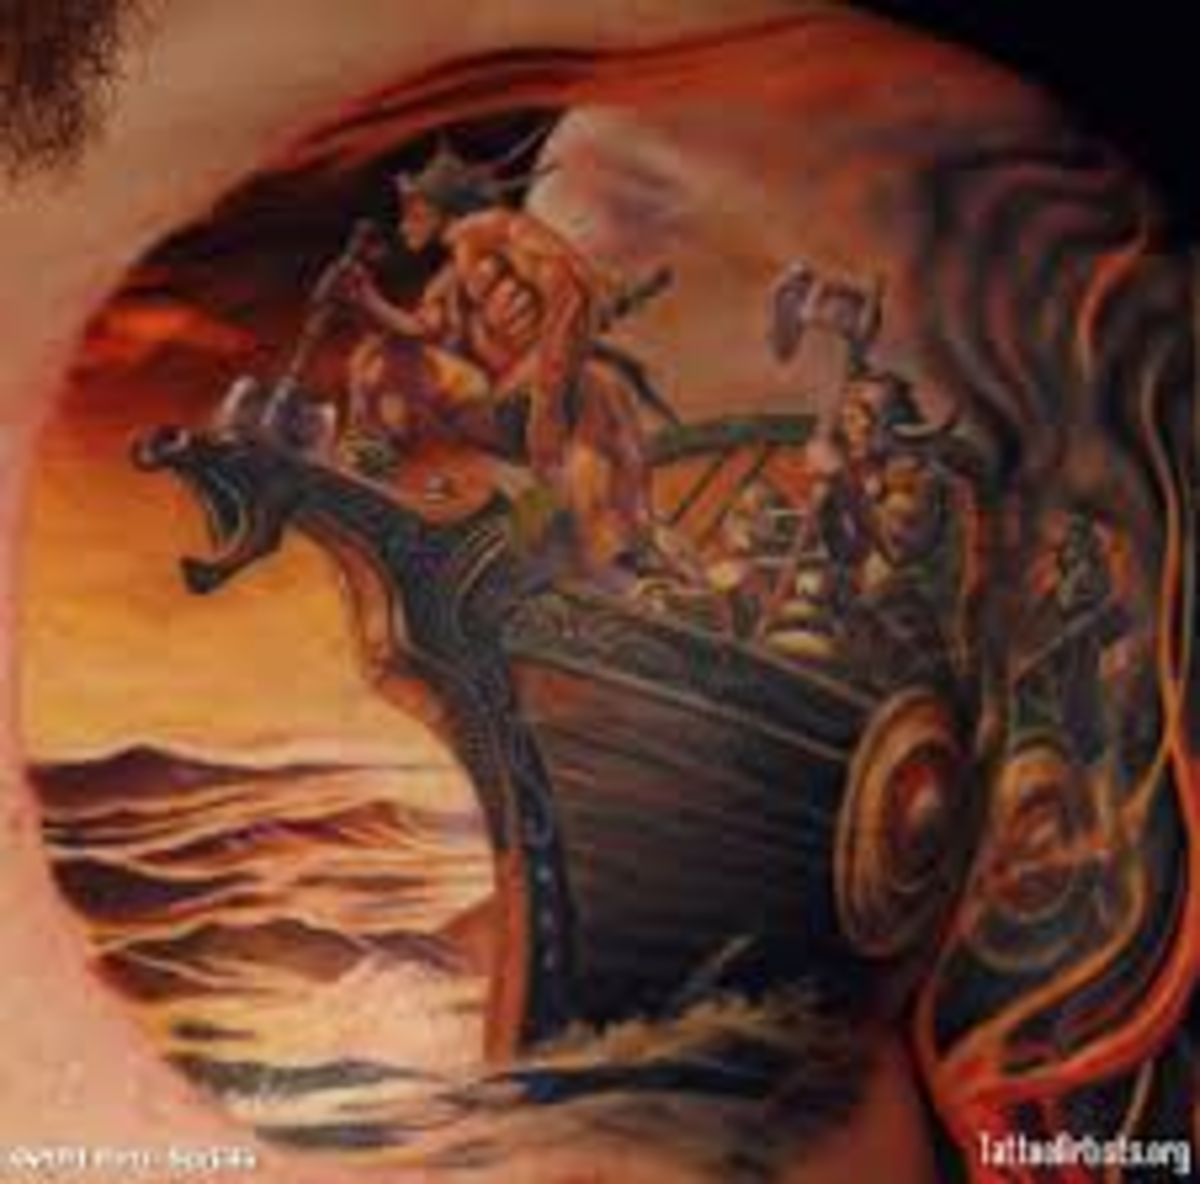 viking tattoo designs and ideas viking tattoo meanings and pictures hubpages. Black Bedroom Furniture Sets. Home Design Ideas